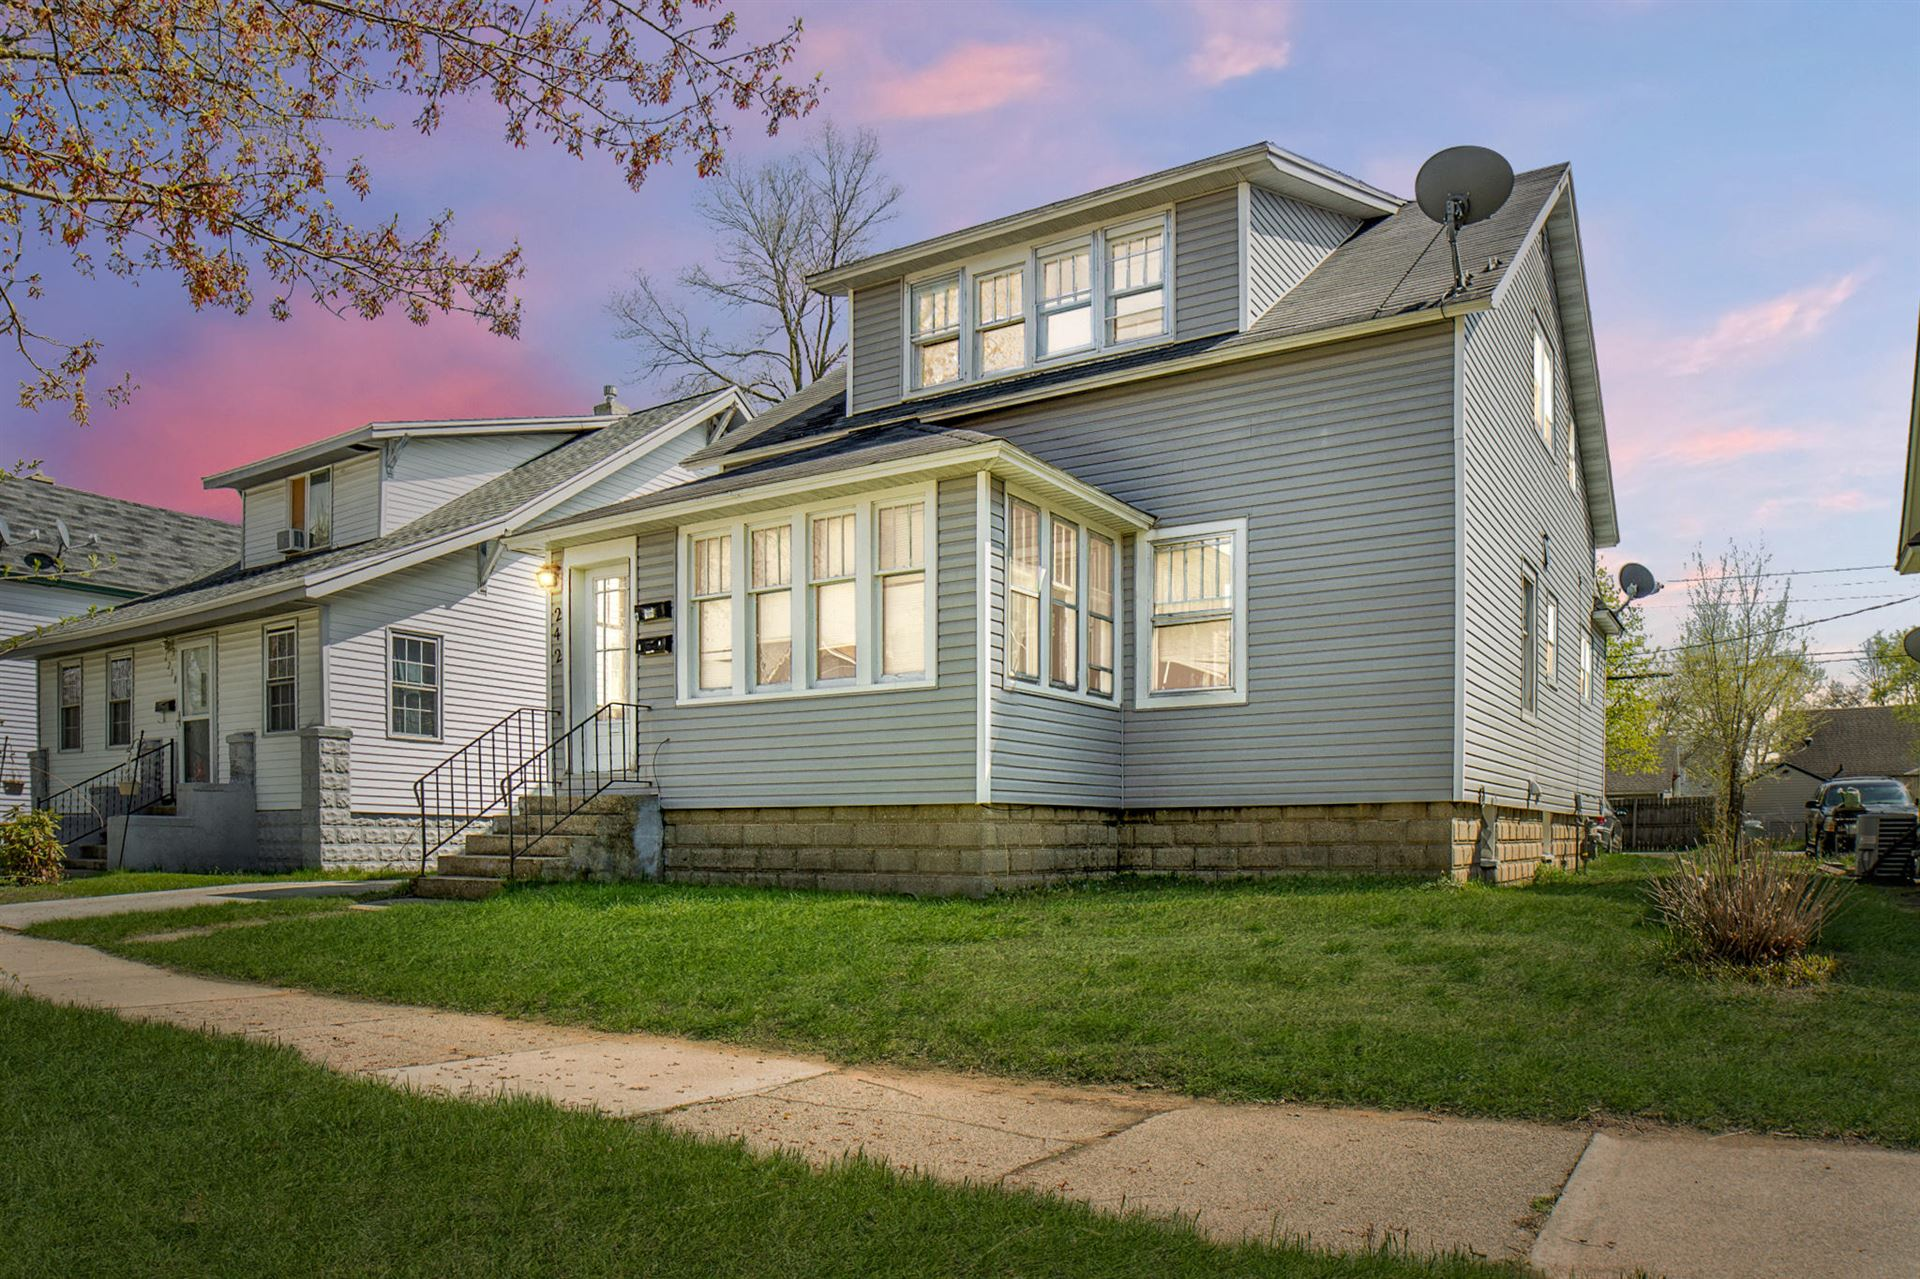 242 W 17th Street, Holland, MI 49423 - MLS#: 21015486